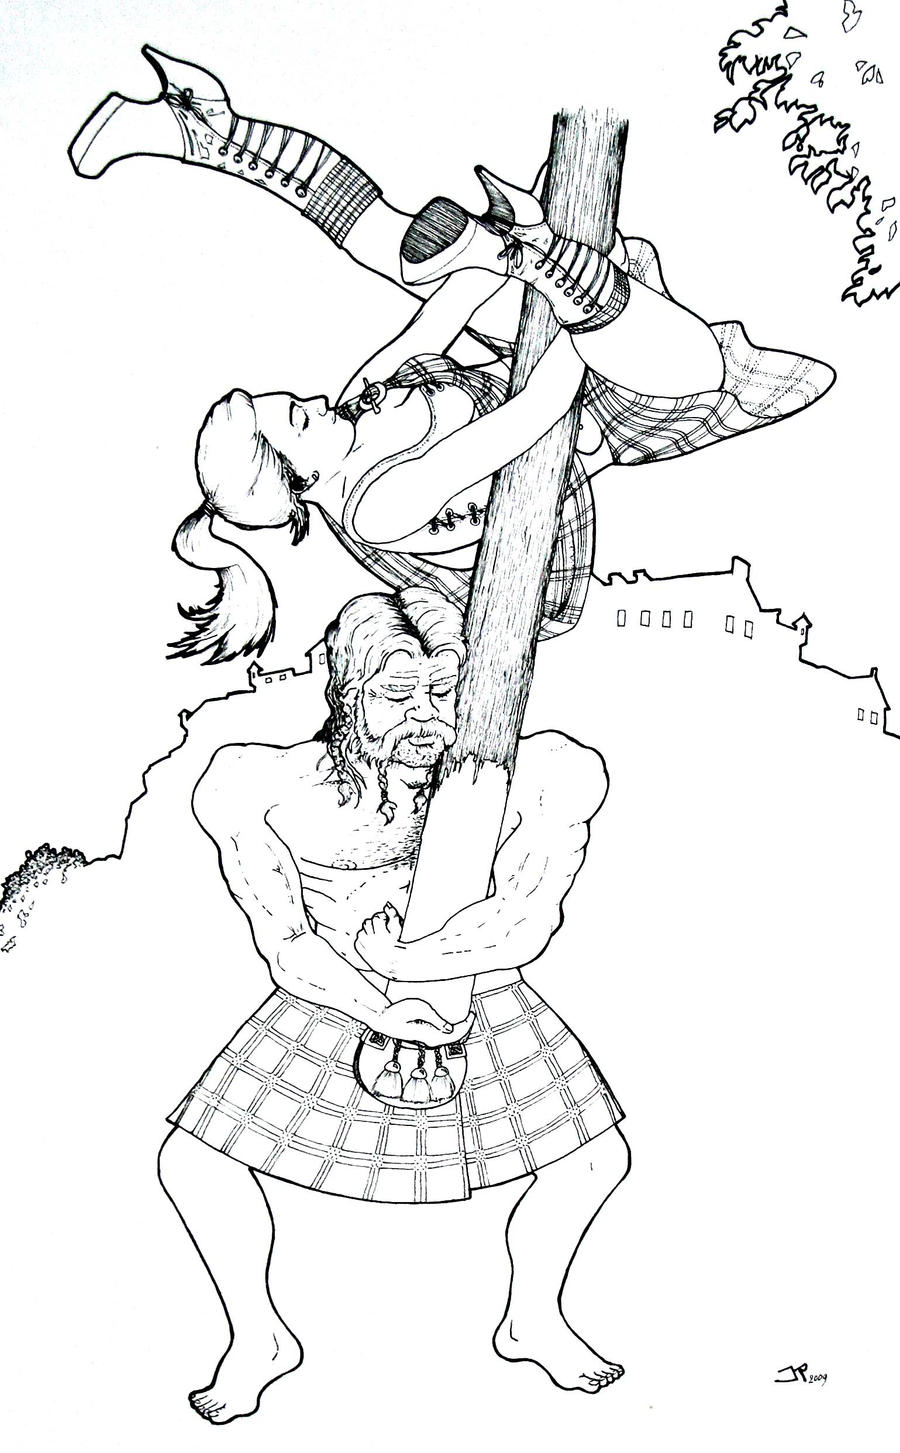 caber tossing pole dancing by strooitje on deviantart